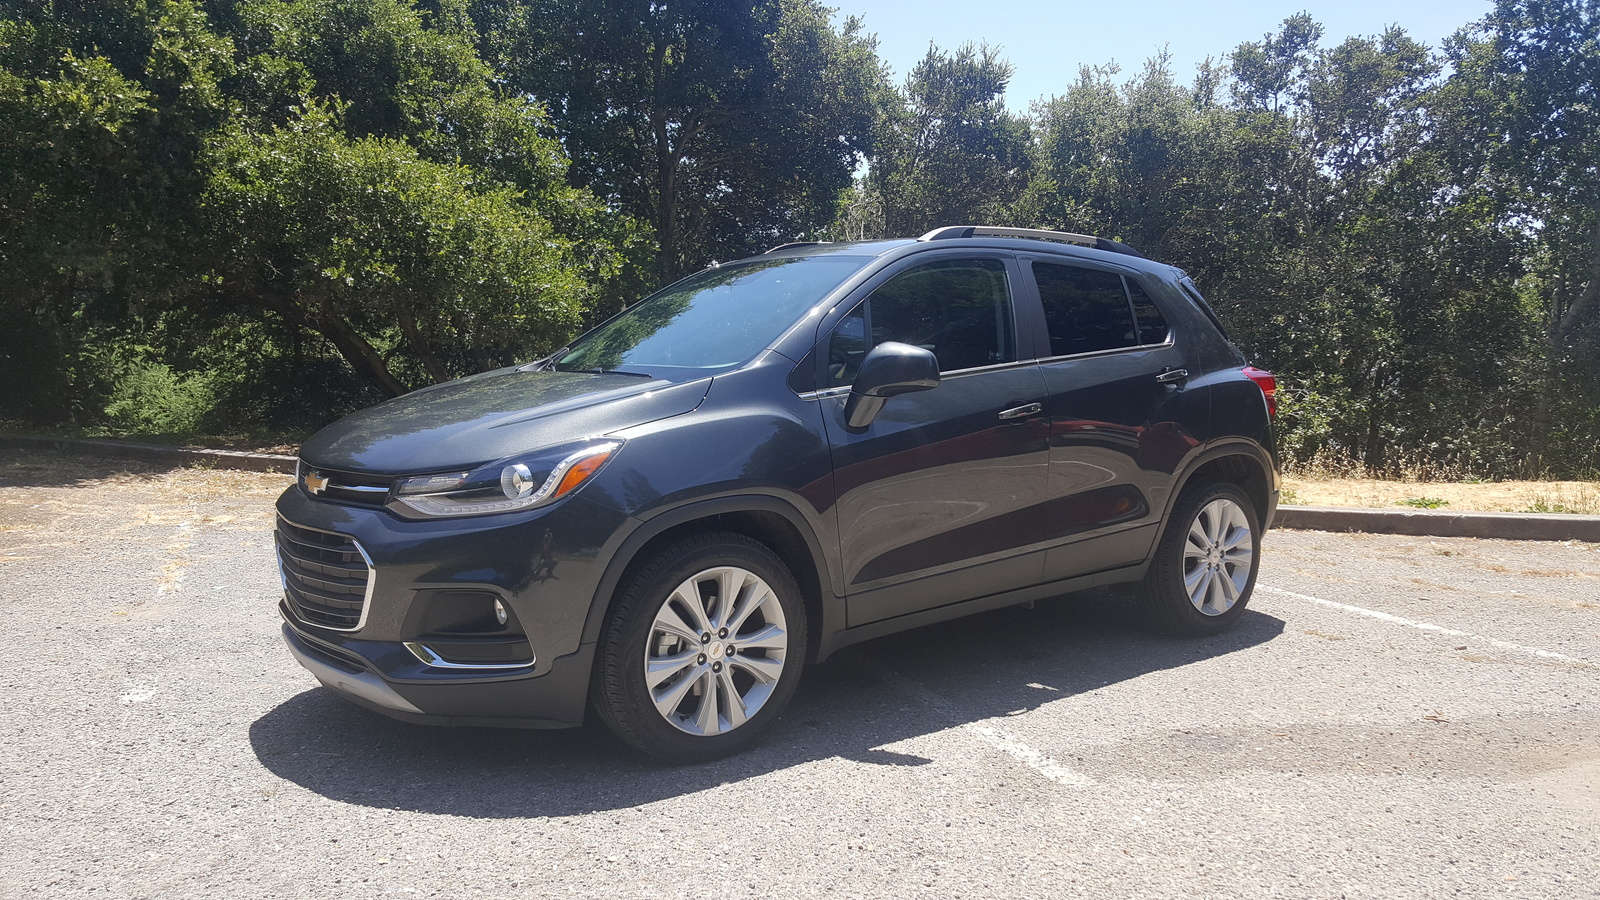 Picture of 2017 Chevrolet Trax